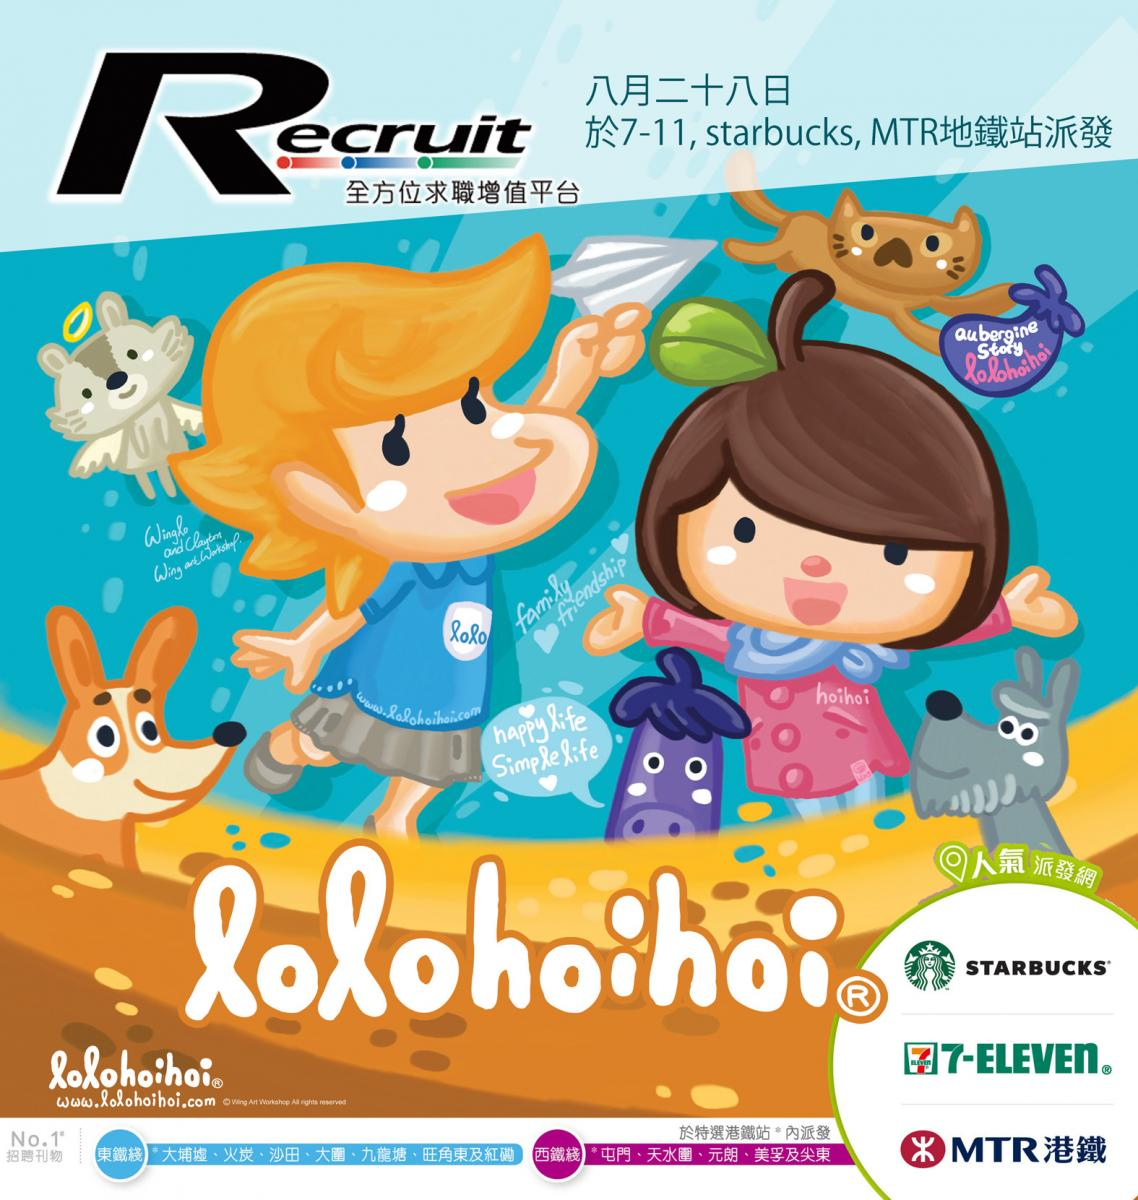 lolohoihoi at Recruit Cover and 訪問